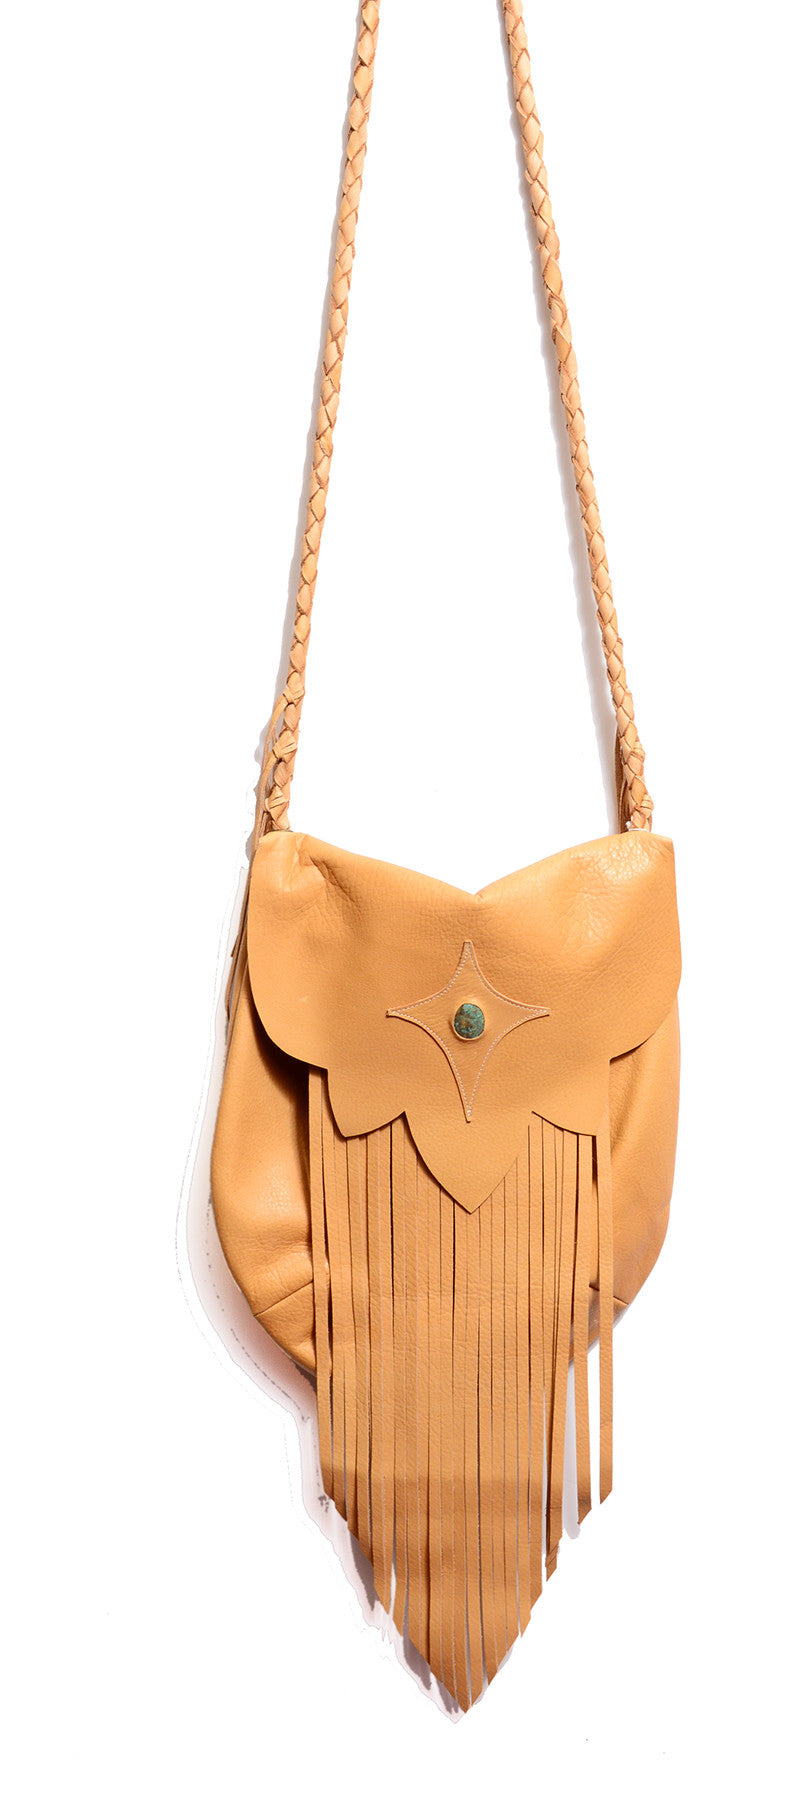 NATIVE RAINBOW - SAHARA FRINGE HOBO BAG IN CAMEL - FETISH